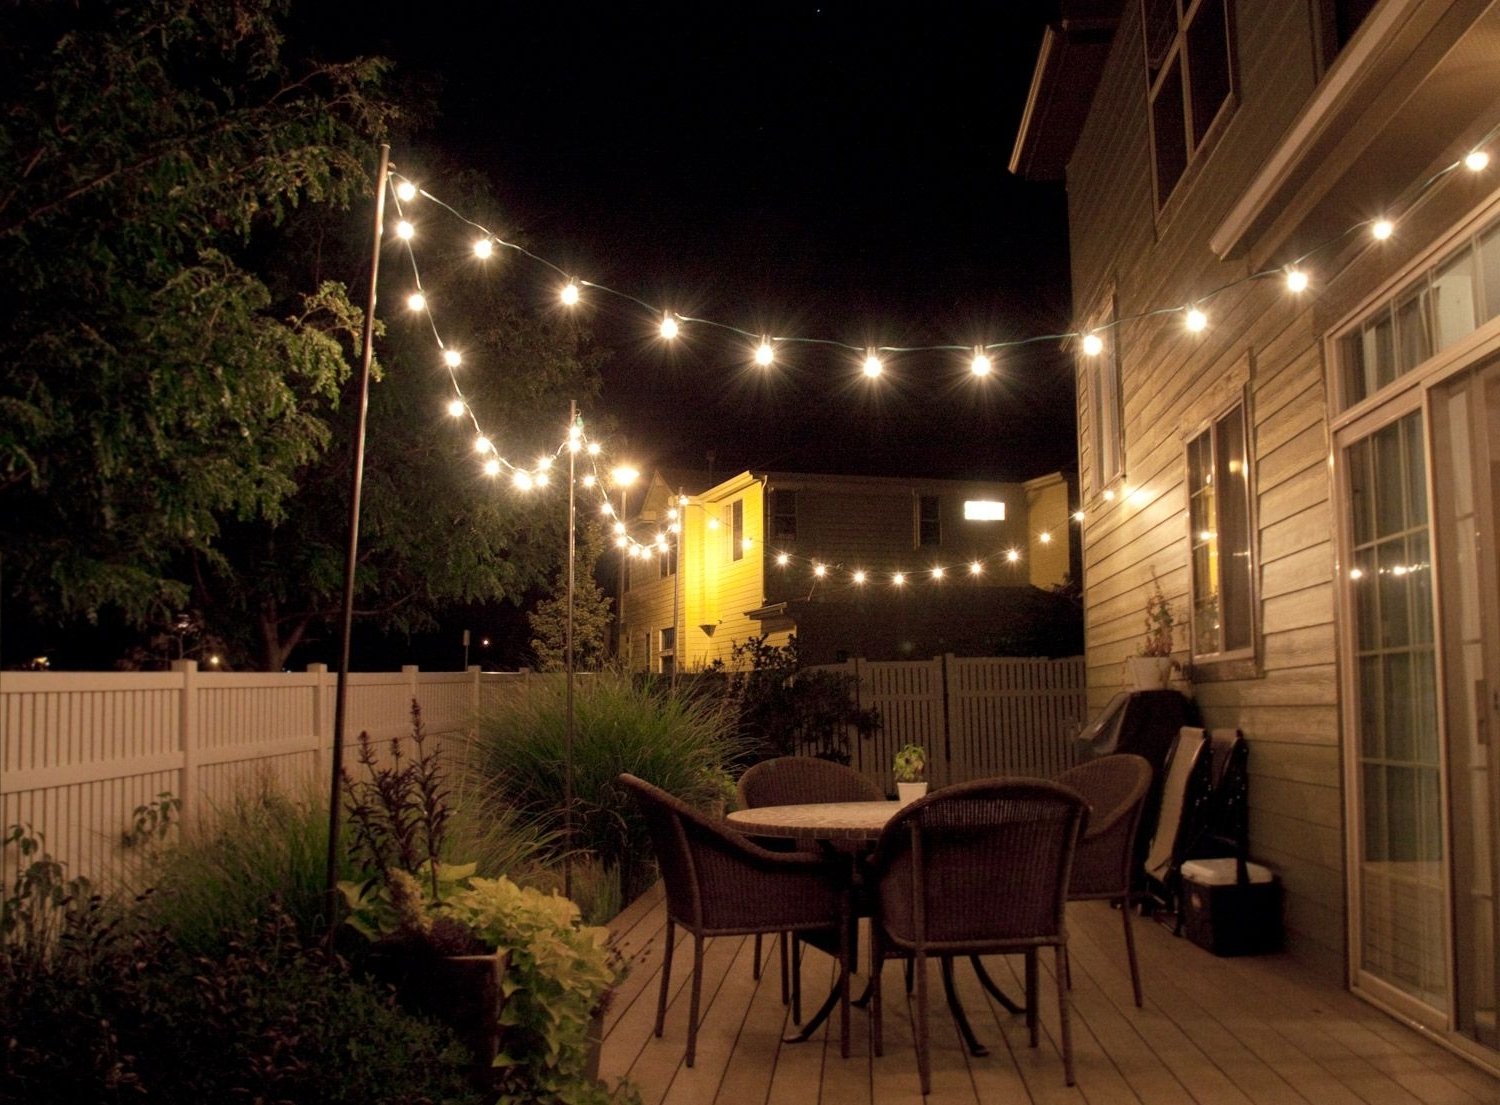 Outdoor Hanging Patio Lanterns Regarding Recent How To Make Inexpensive Poles To Hang String Lights On – Café Style (View 10 of 20)